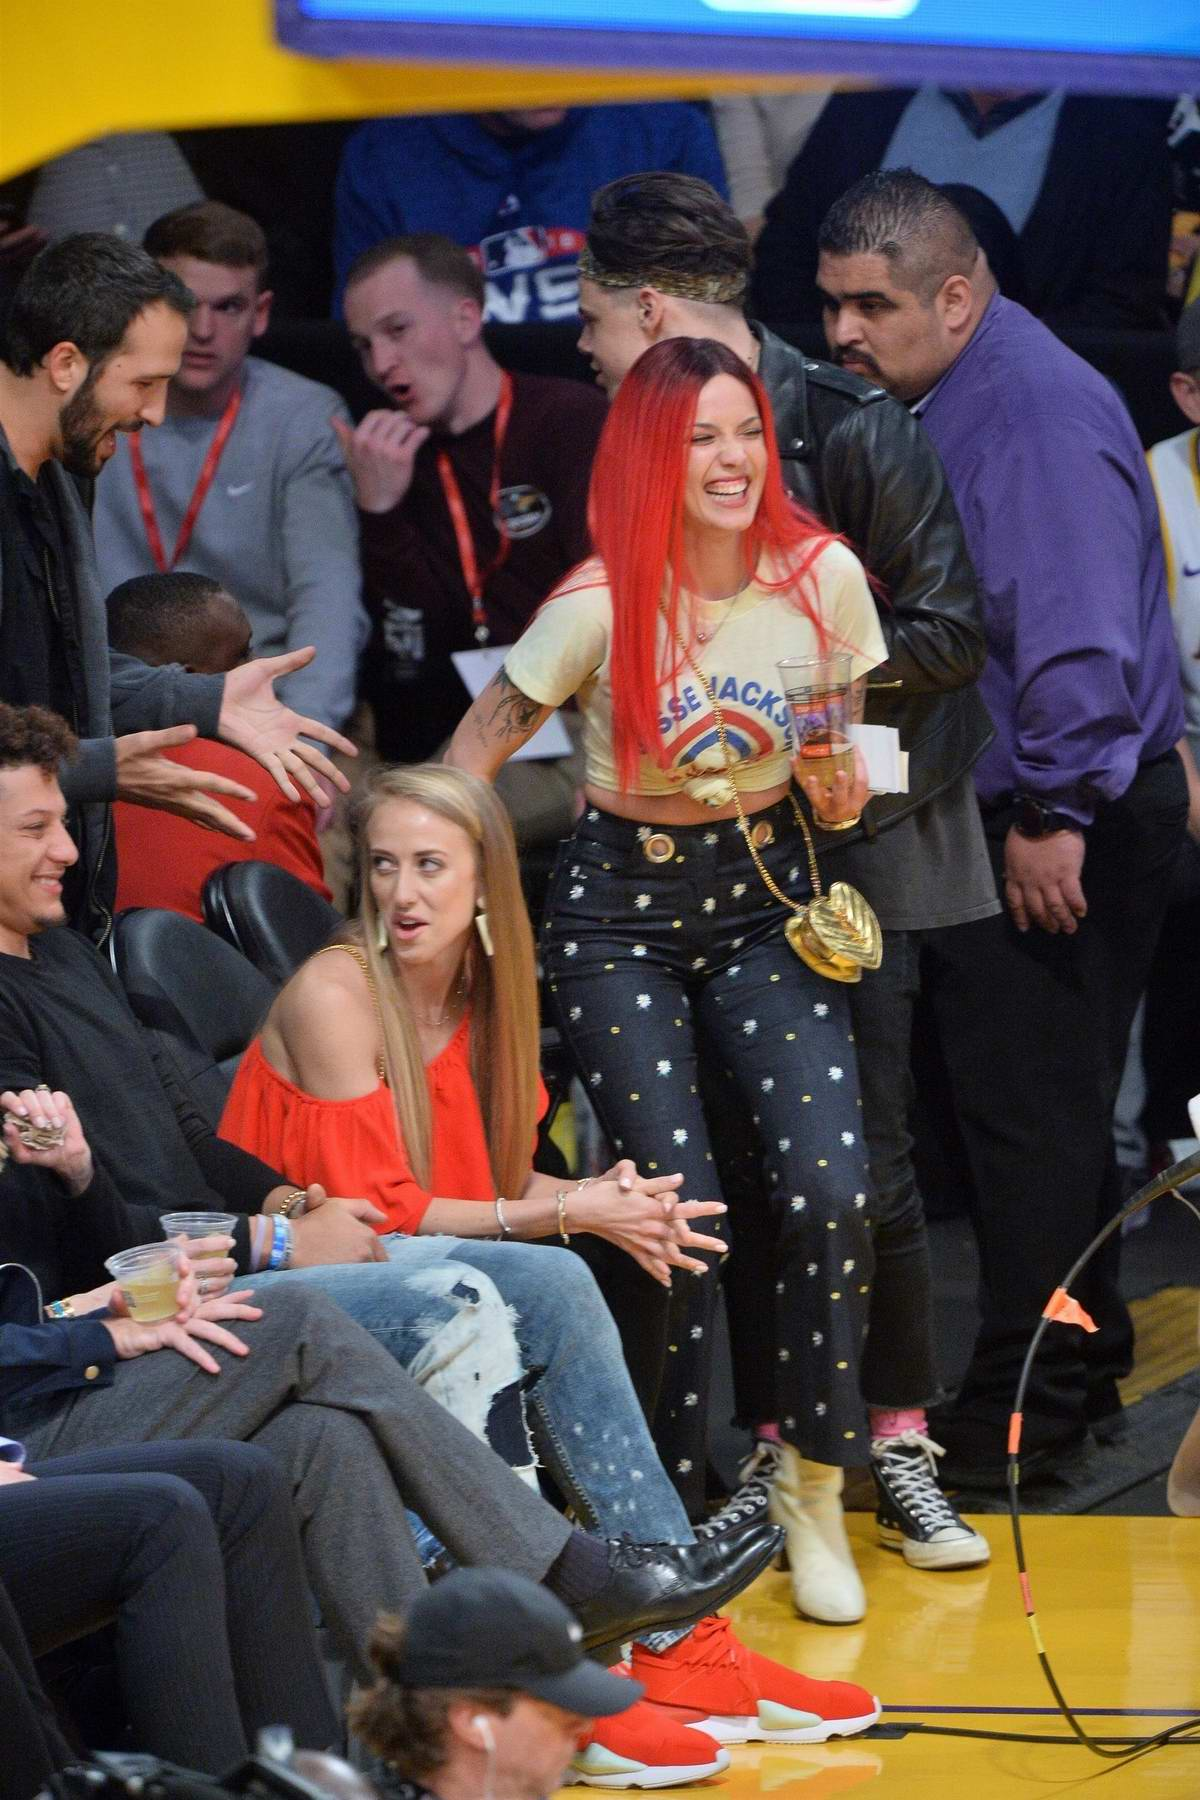 Halsey and Yungblud enjoy the Lakers game at Staples Center in Los Angeles